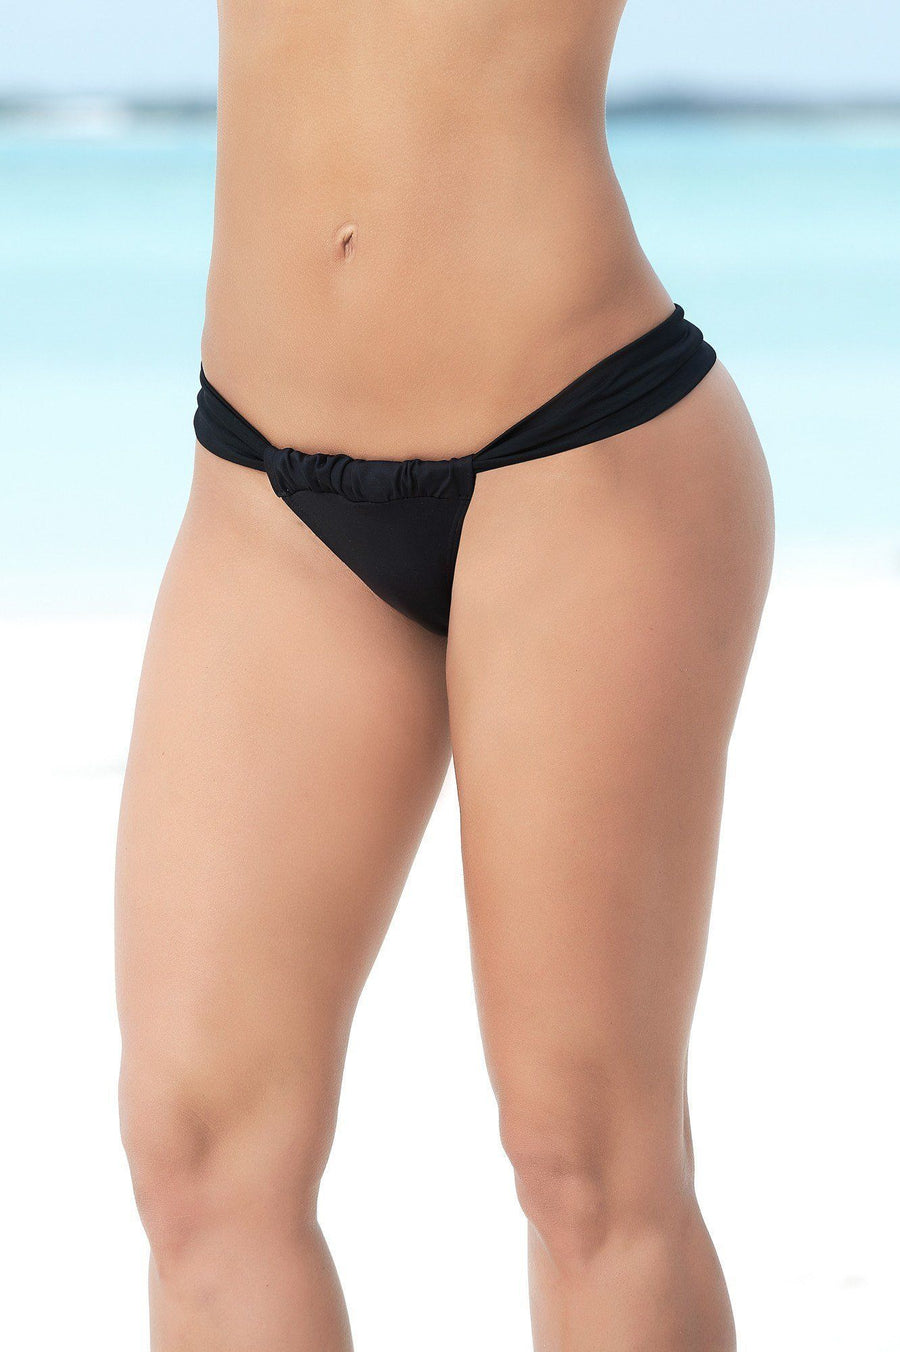 Black Sunny Days Thong Bikini Bottom